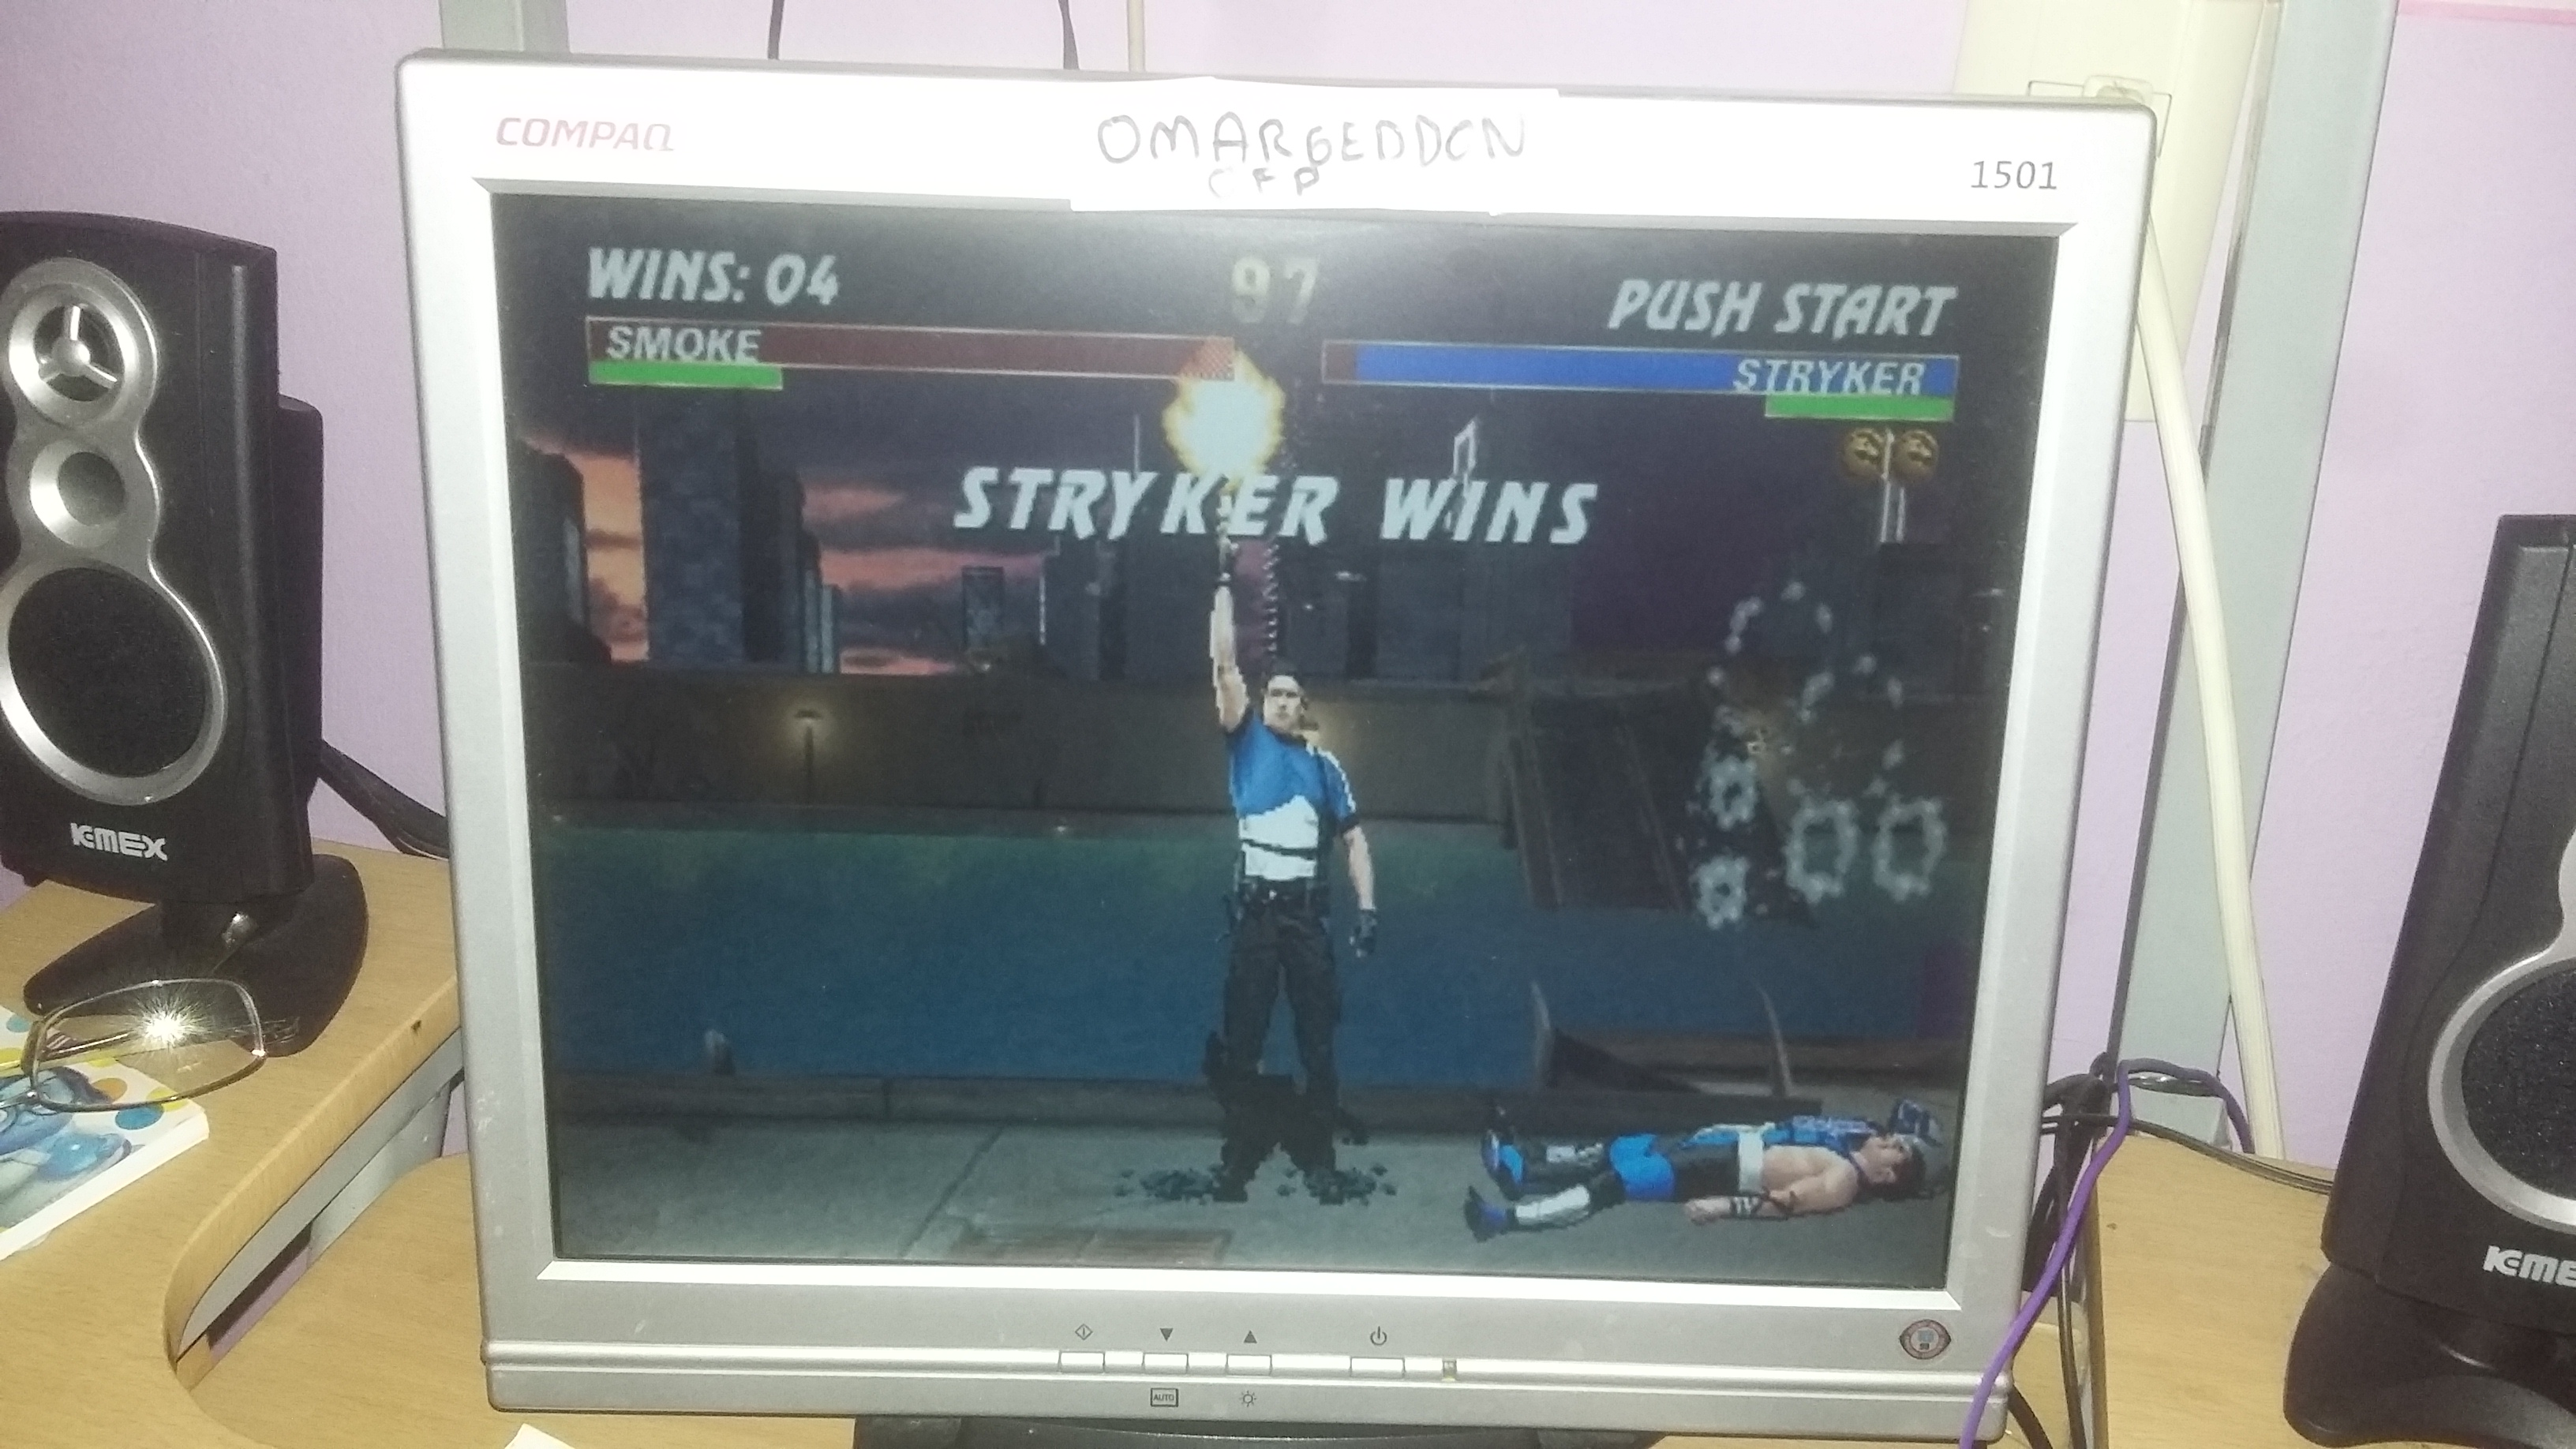 Ultimate Mortal Kombat 3 [Win Streak] 4 points